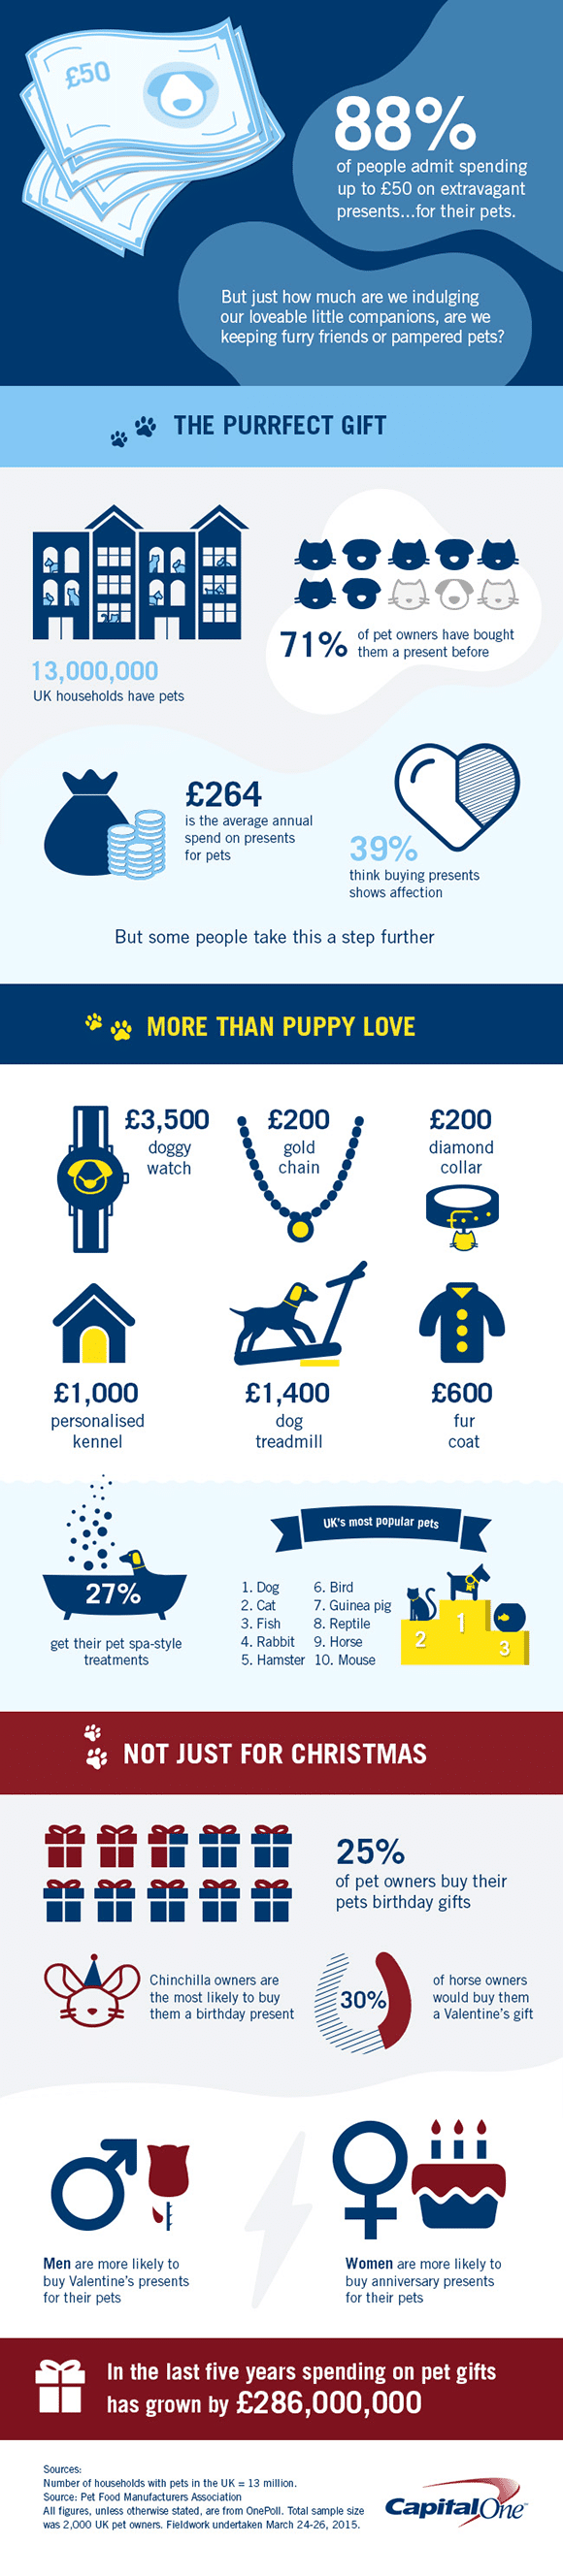 Pampered Pets – How Much Do Brits Spend On Their Pets? [Infographic]